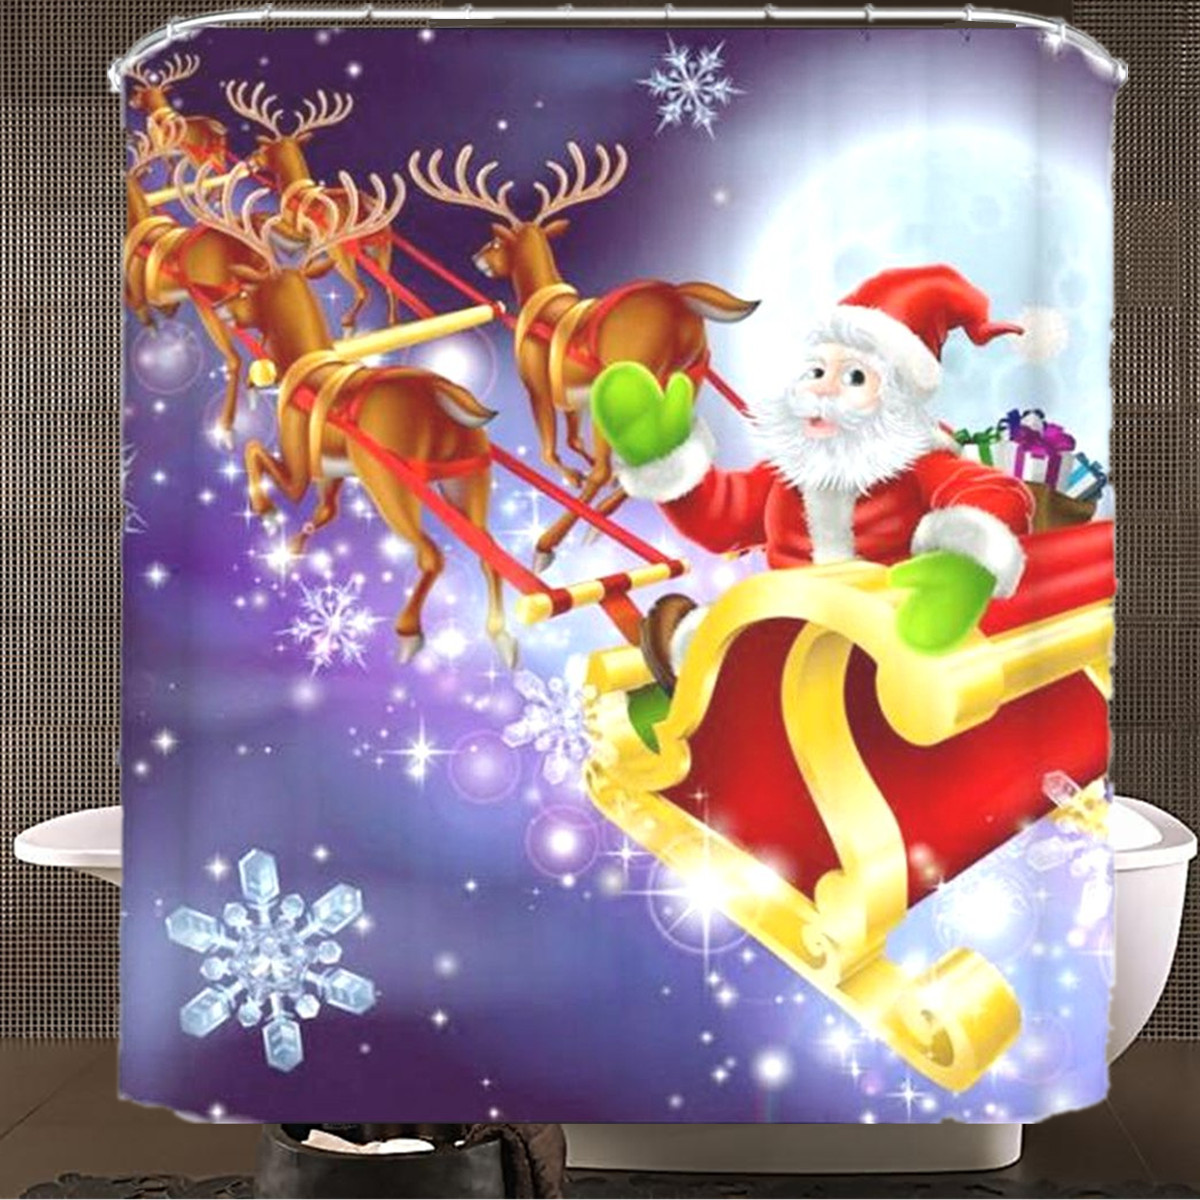 150x180cm Santa Claus Waterproof Polyester Shower Curtain Bathroom Christmas Decor with 12 Hooks